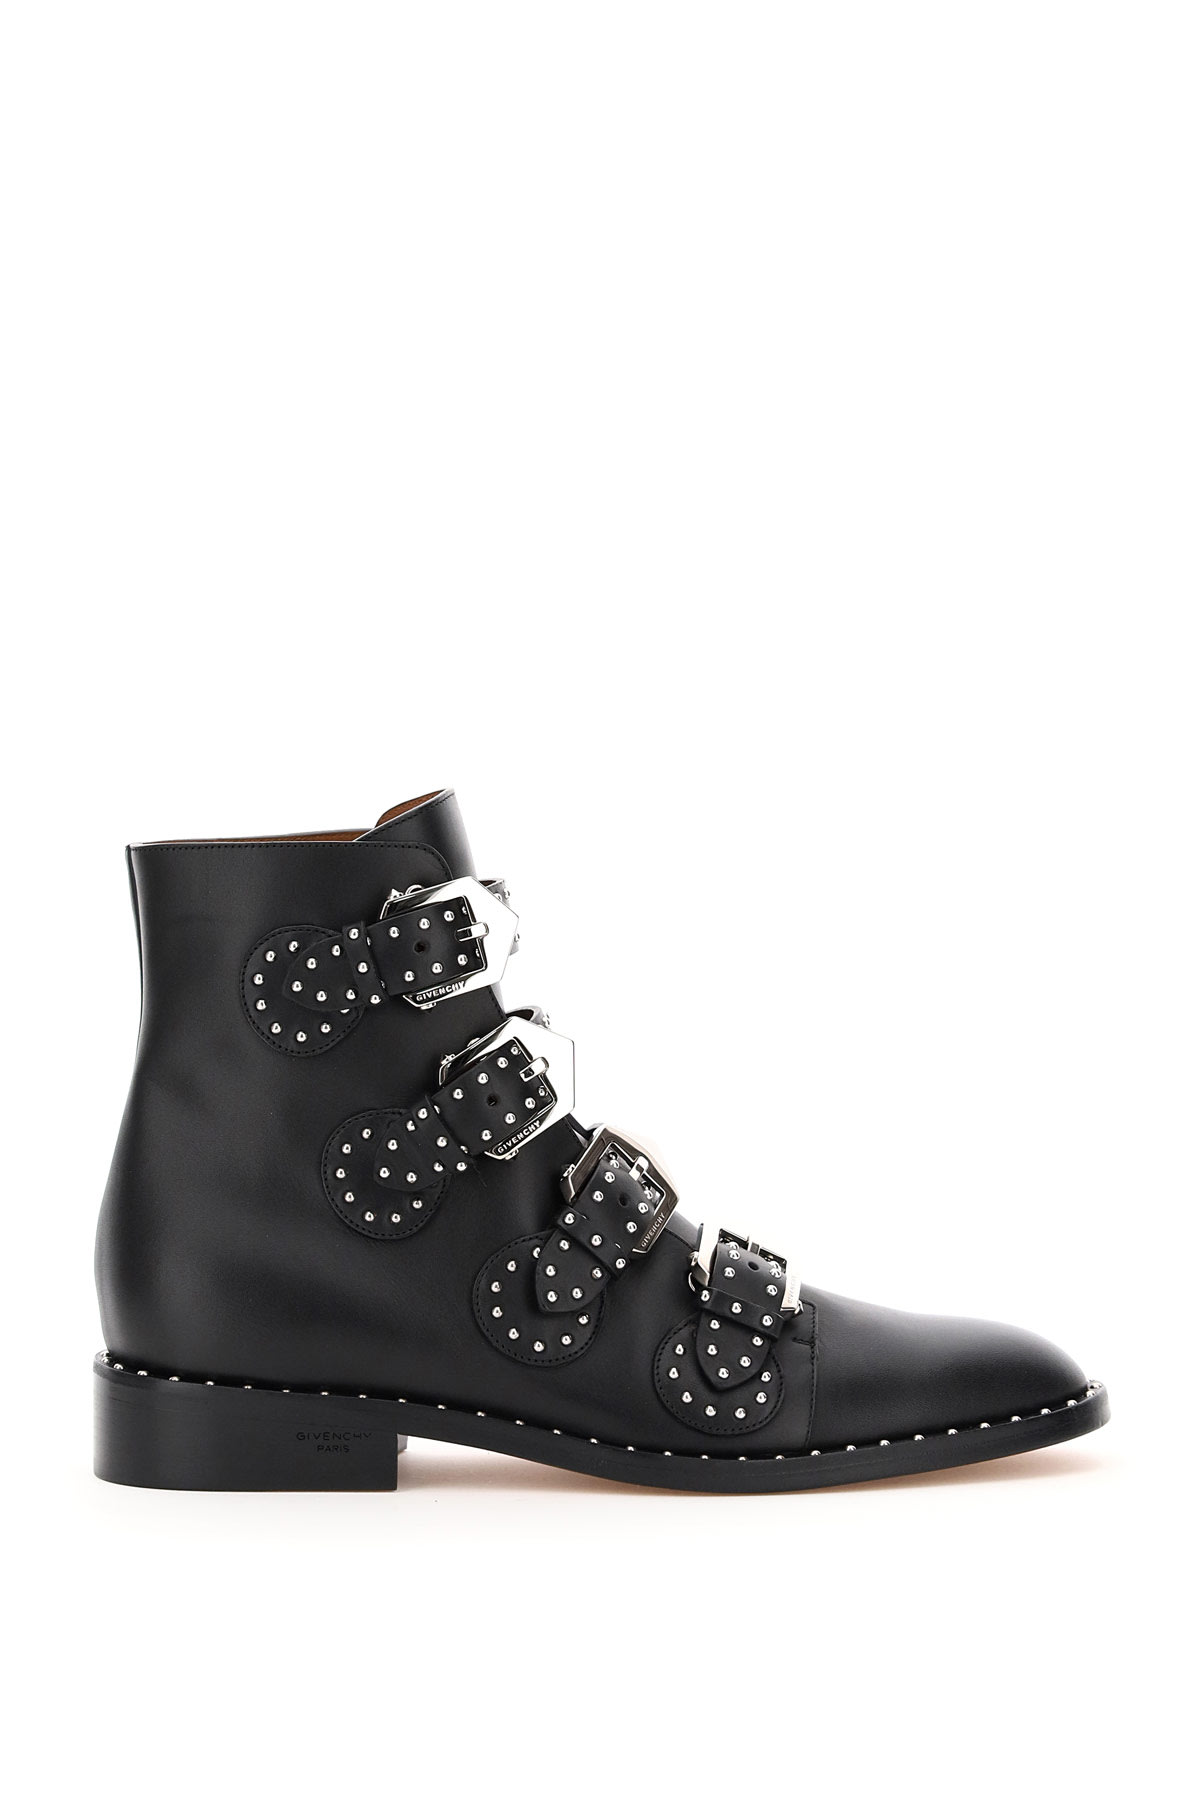 Givenchy Low Heels Ankle Boots In Black Leather In Black (black)